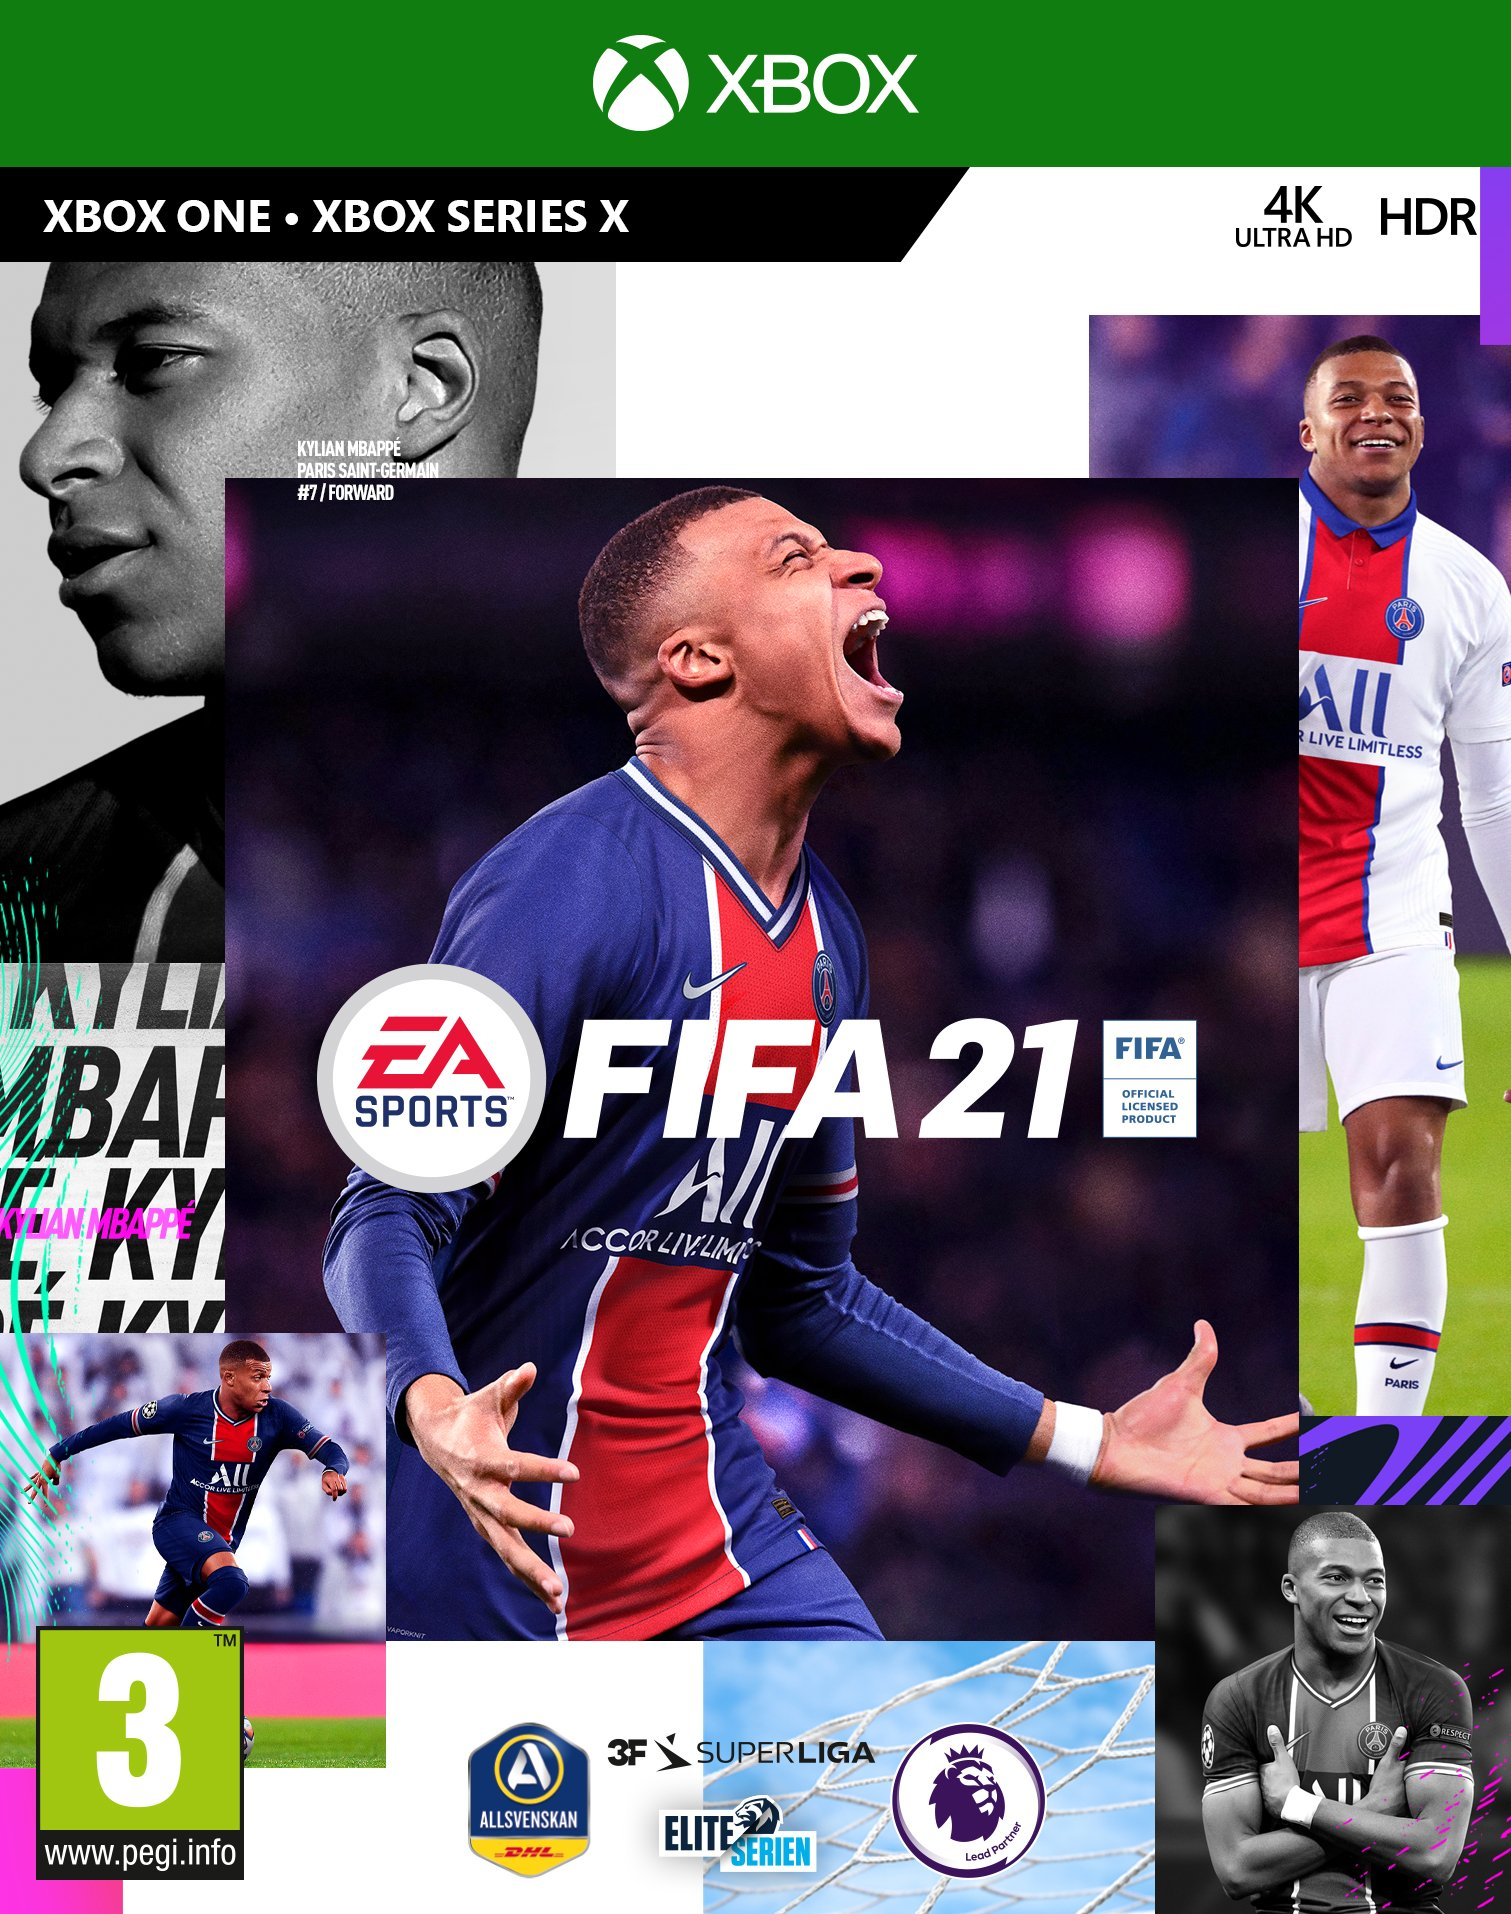 coolshop.co.uk - FIFA 21 (Nordic) – Includes XBOX Series X Version